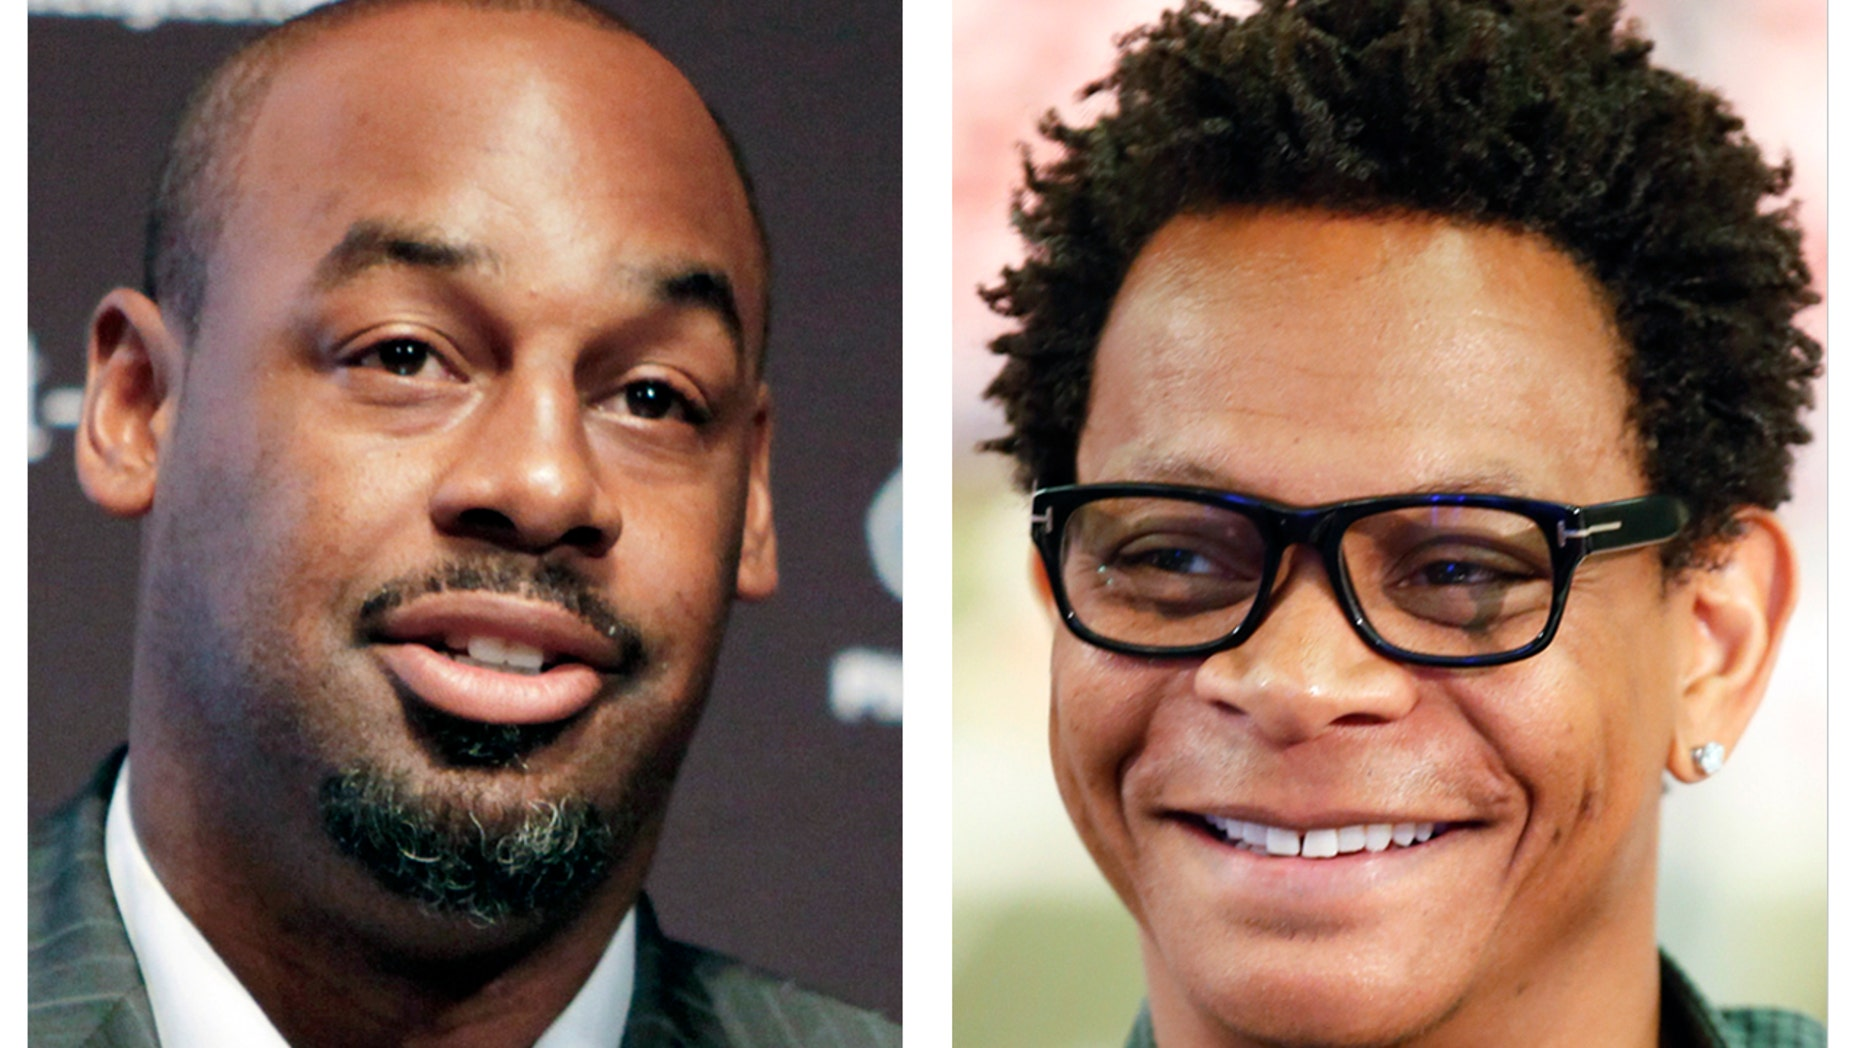 Donvan McNabb and Eric Davis were accused of sexual harassment by a former co-worker at NFL Network.